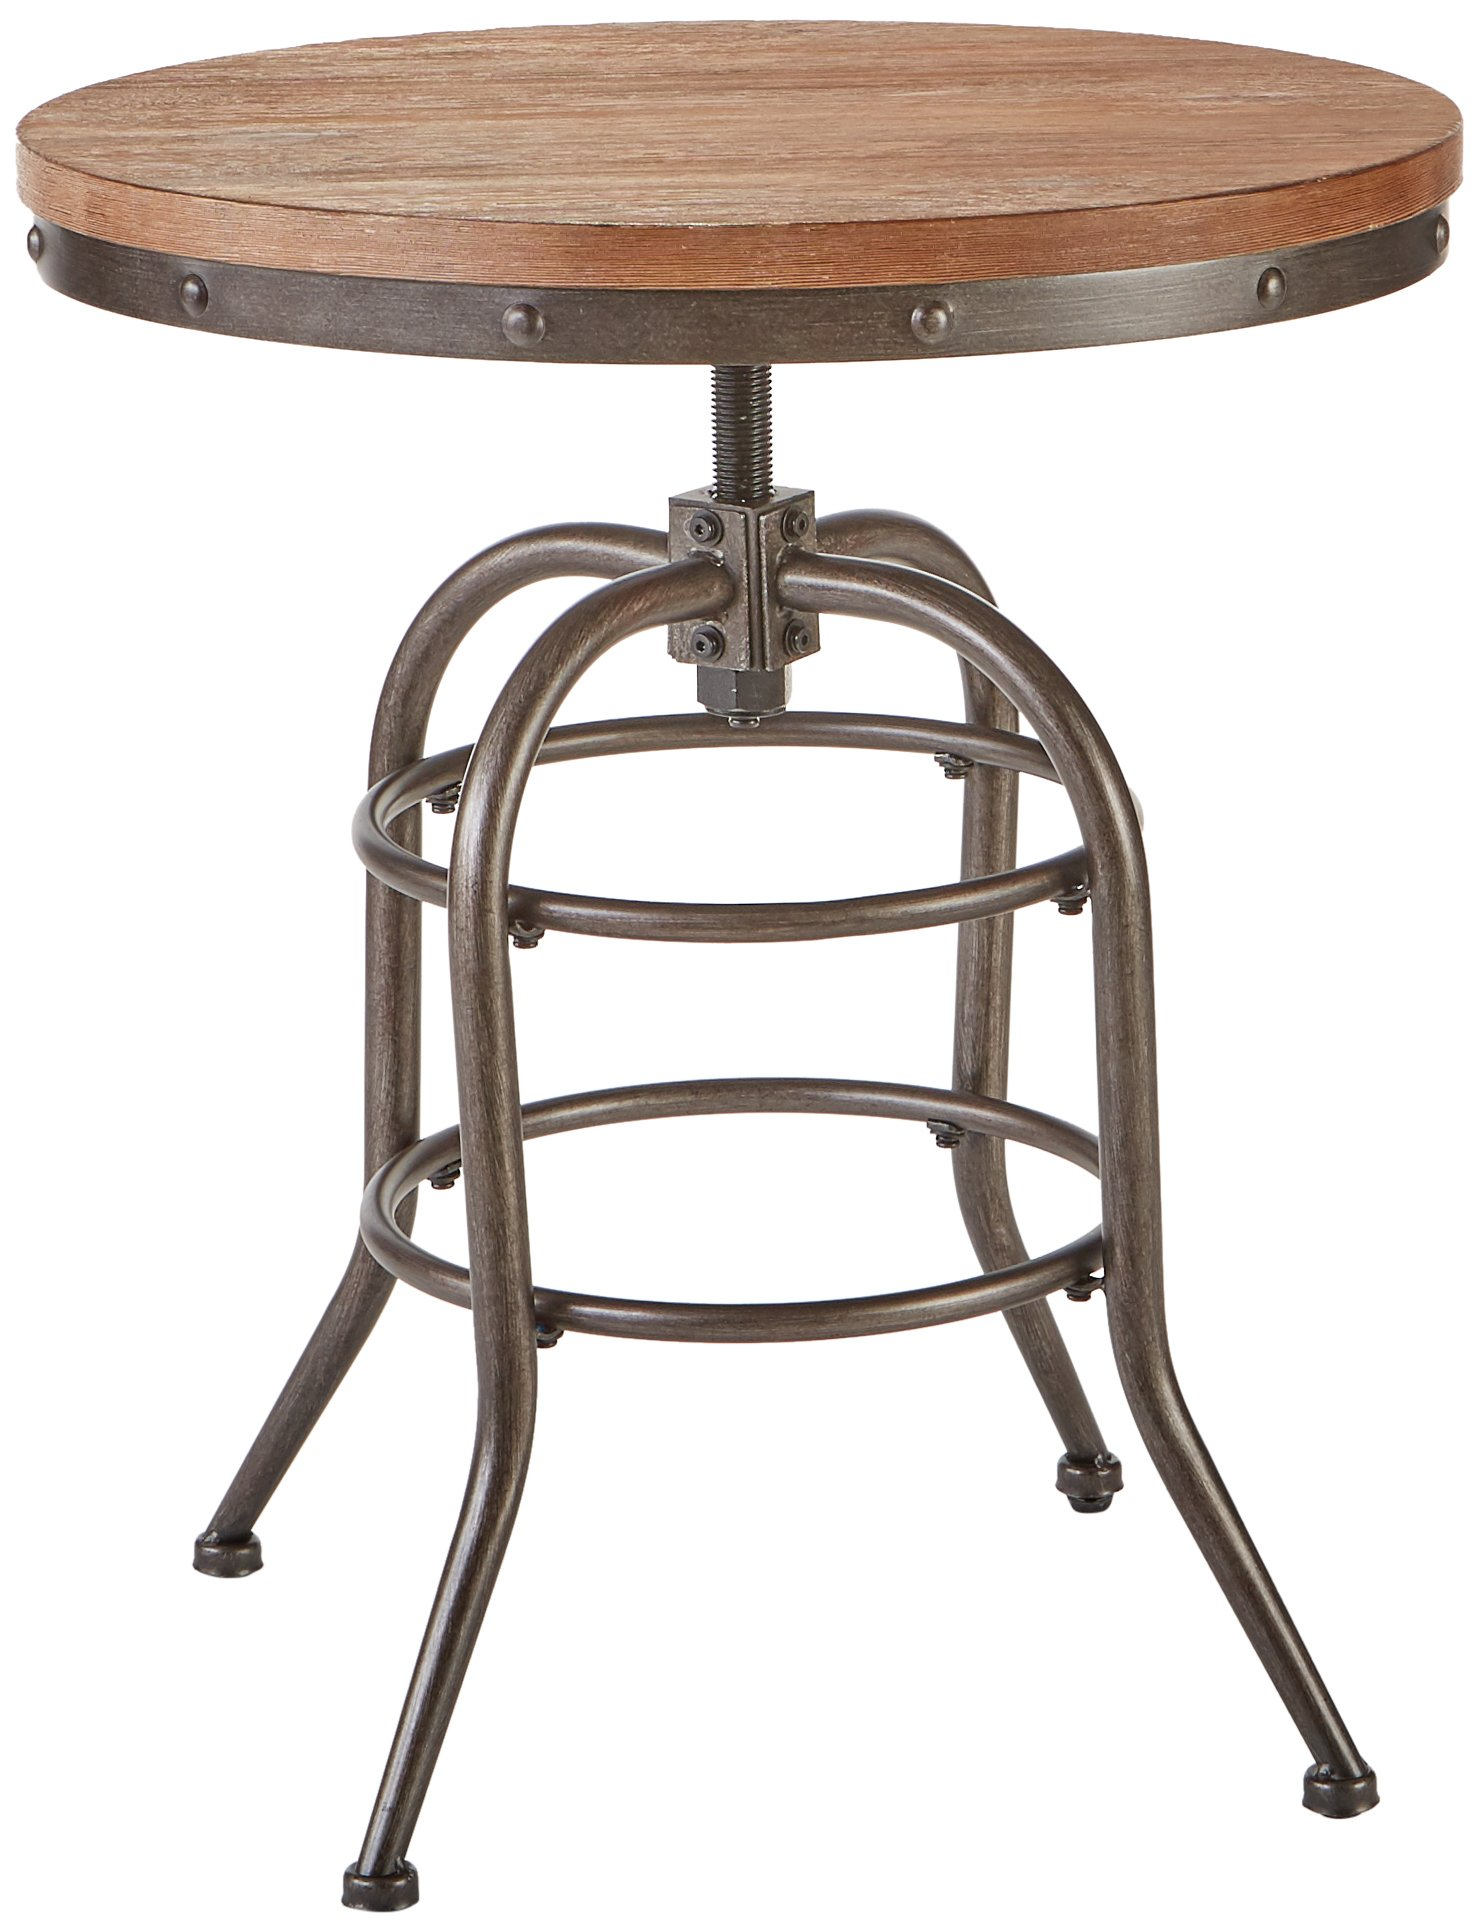 Details About Ashley Furniture Signature Design   Vennilux End Table   Vintage  Casual   Round